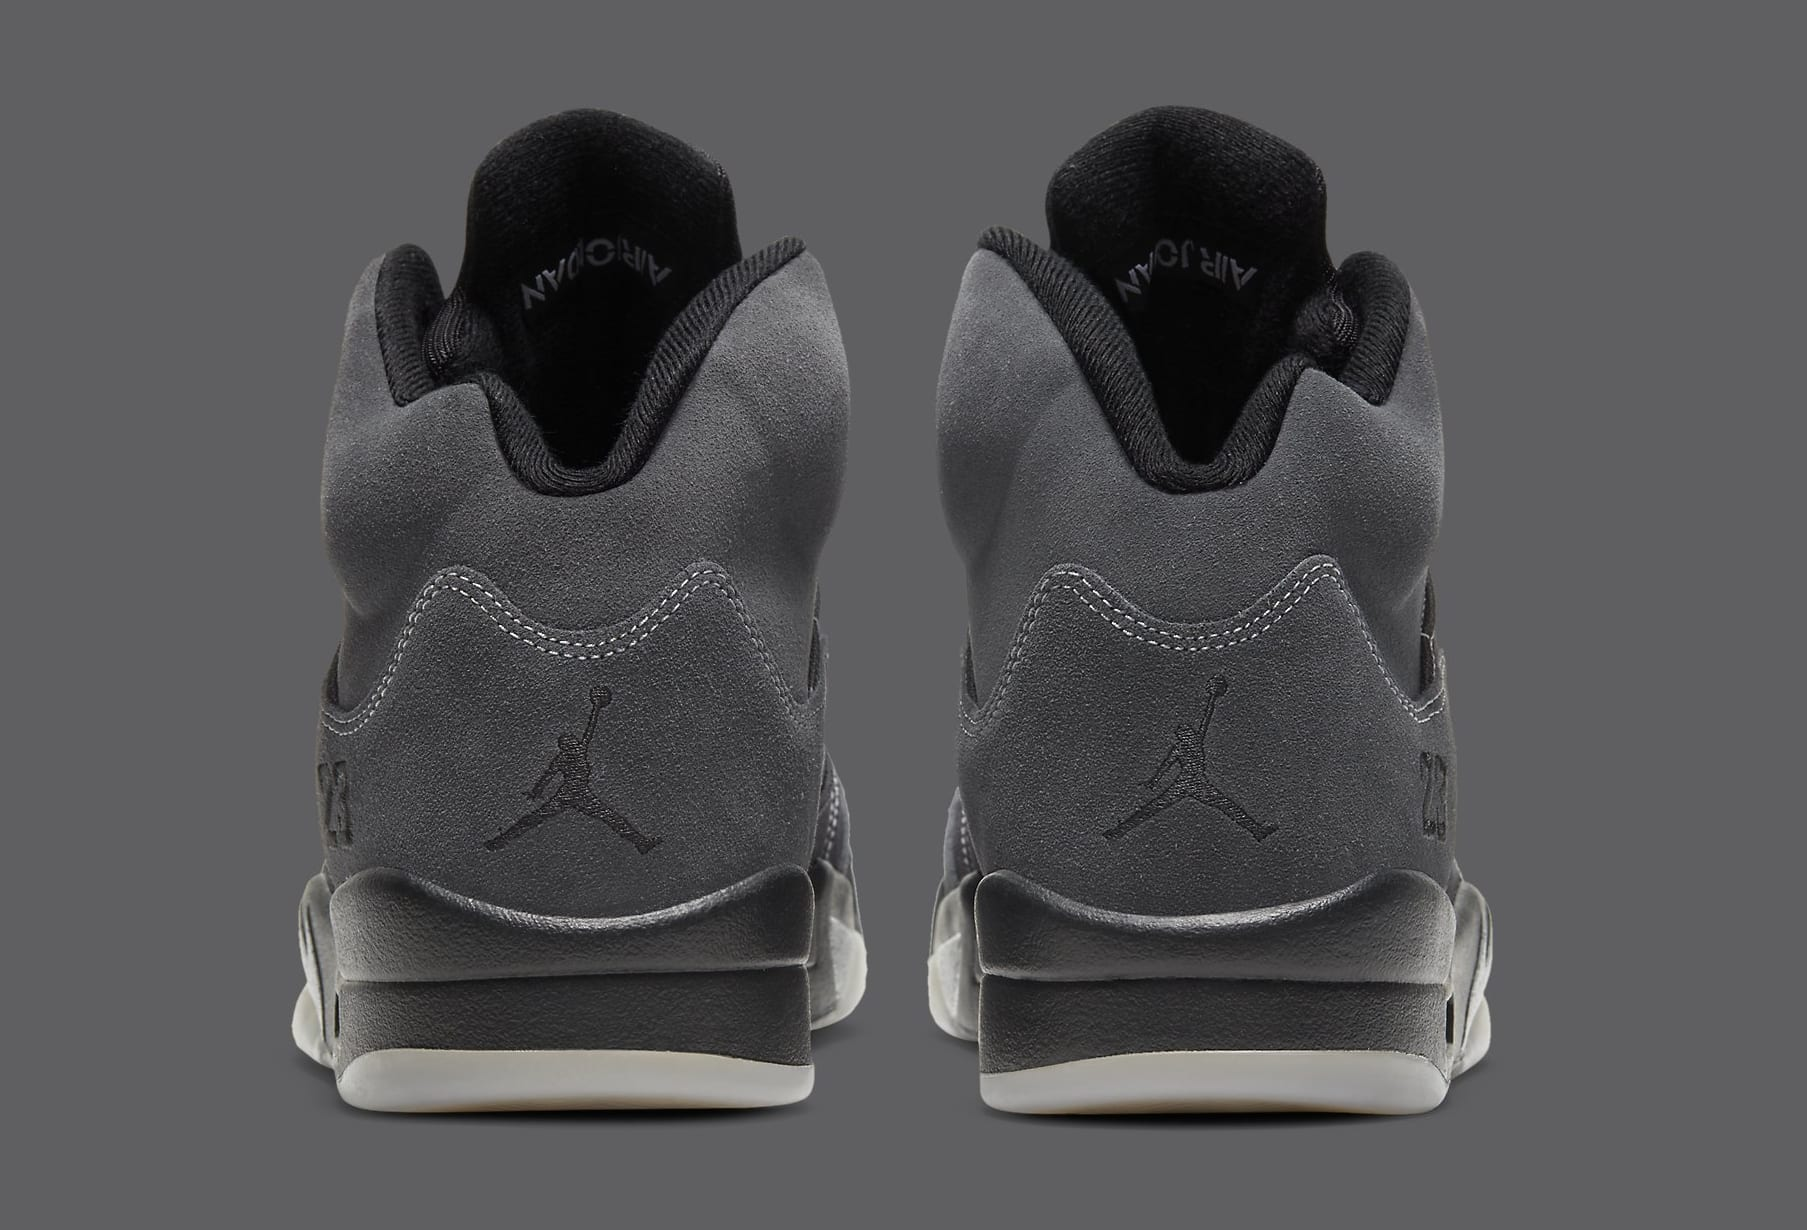 Air Jordan 5 Retro 'Anthracite' DB0731-001 Heel